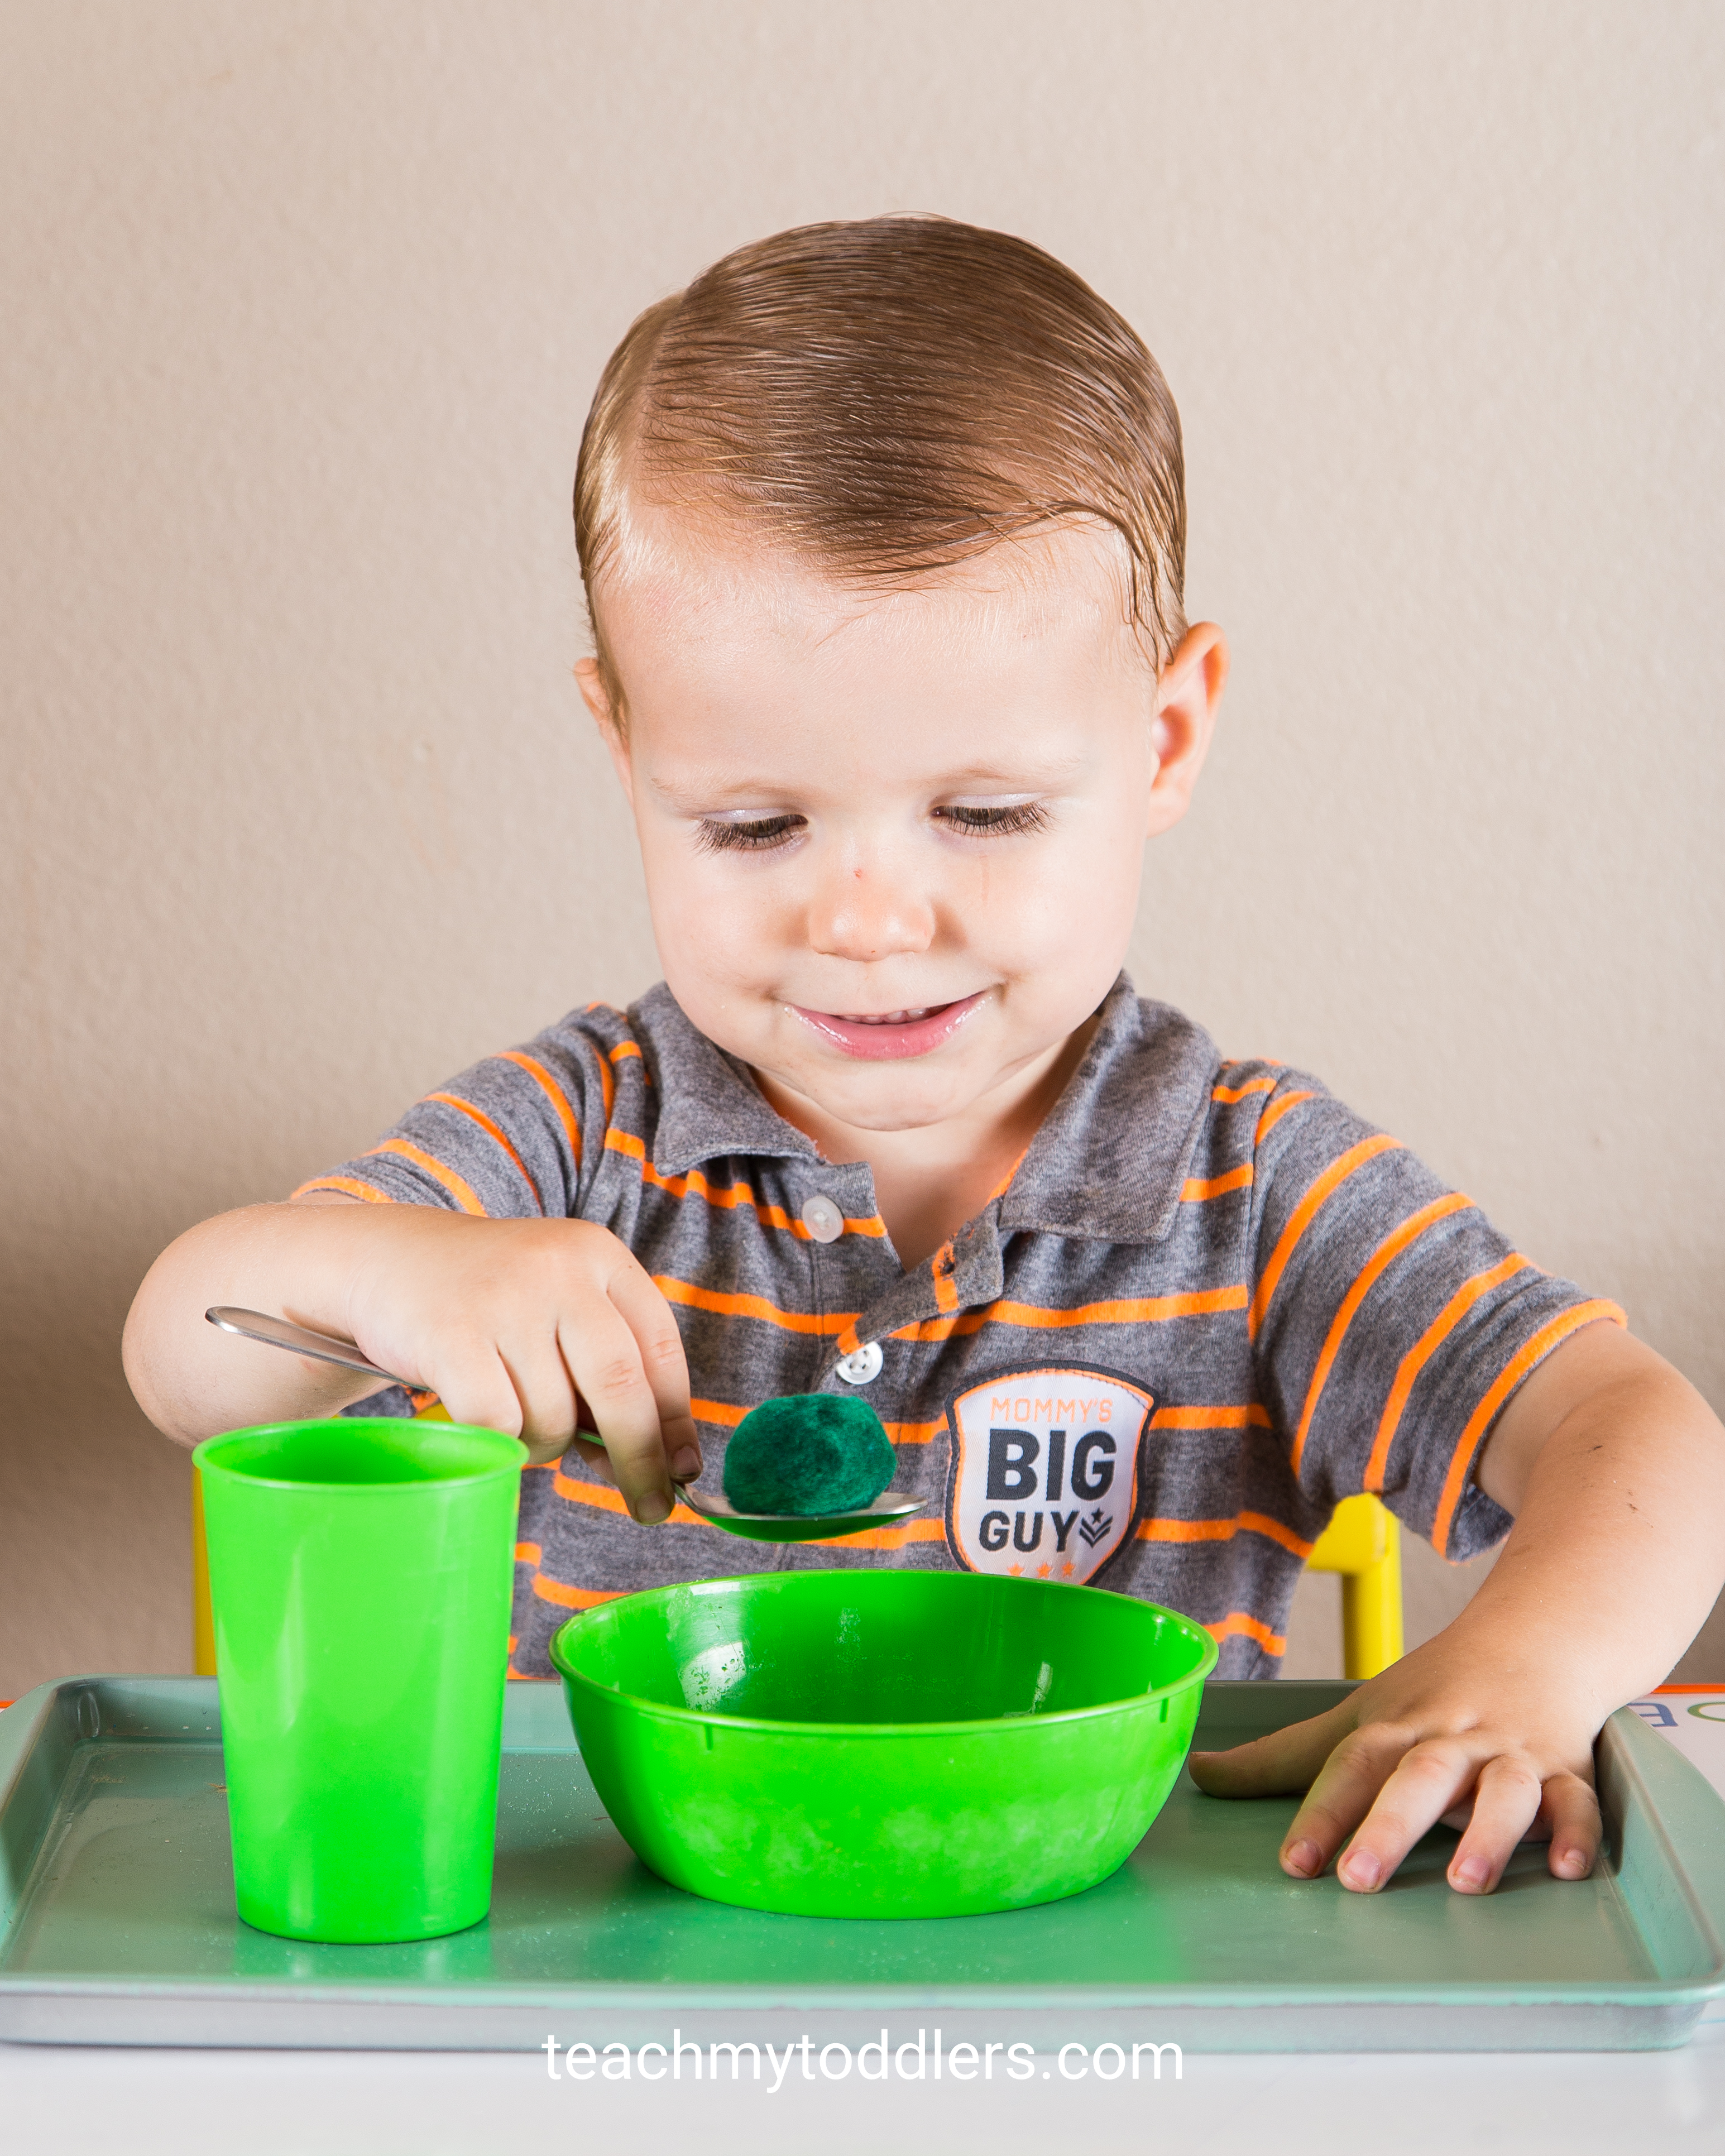 These green tot trays are a good way to teach toddlers the color green